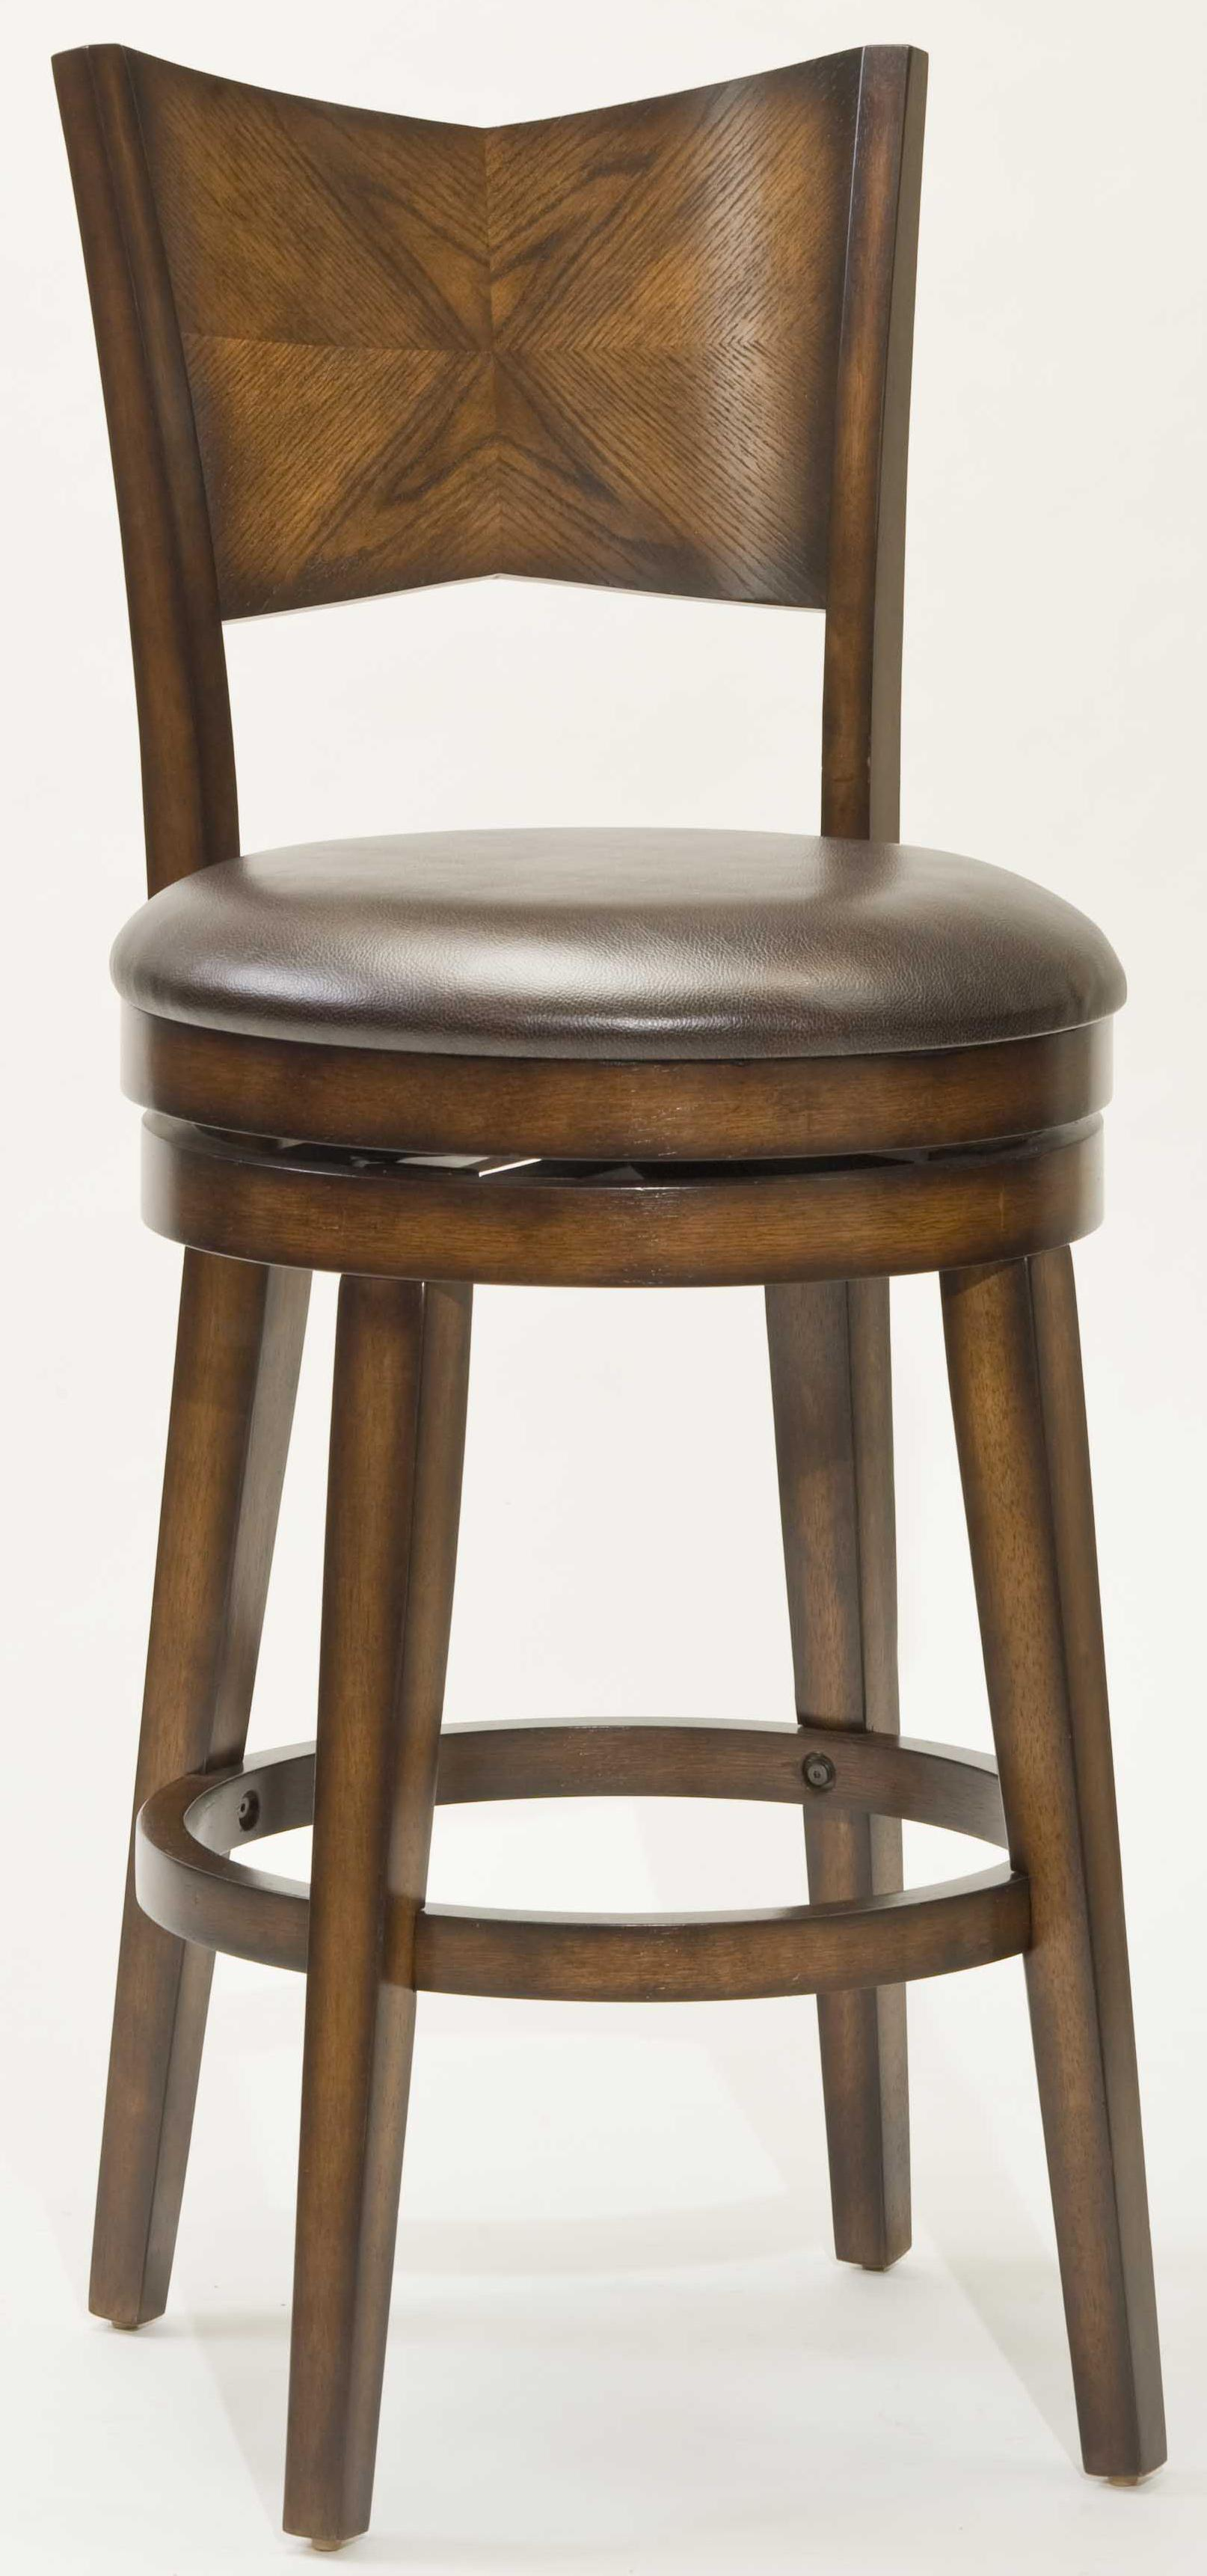 Hillsdale Wood Stools 30 5 Bar Height Jenkins Swivel Bar Stool Lindy S Furniture Company Bar Stools